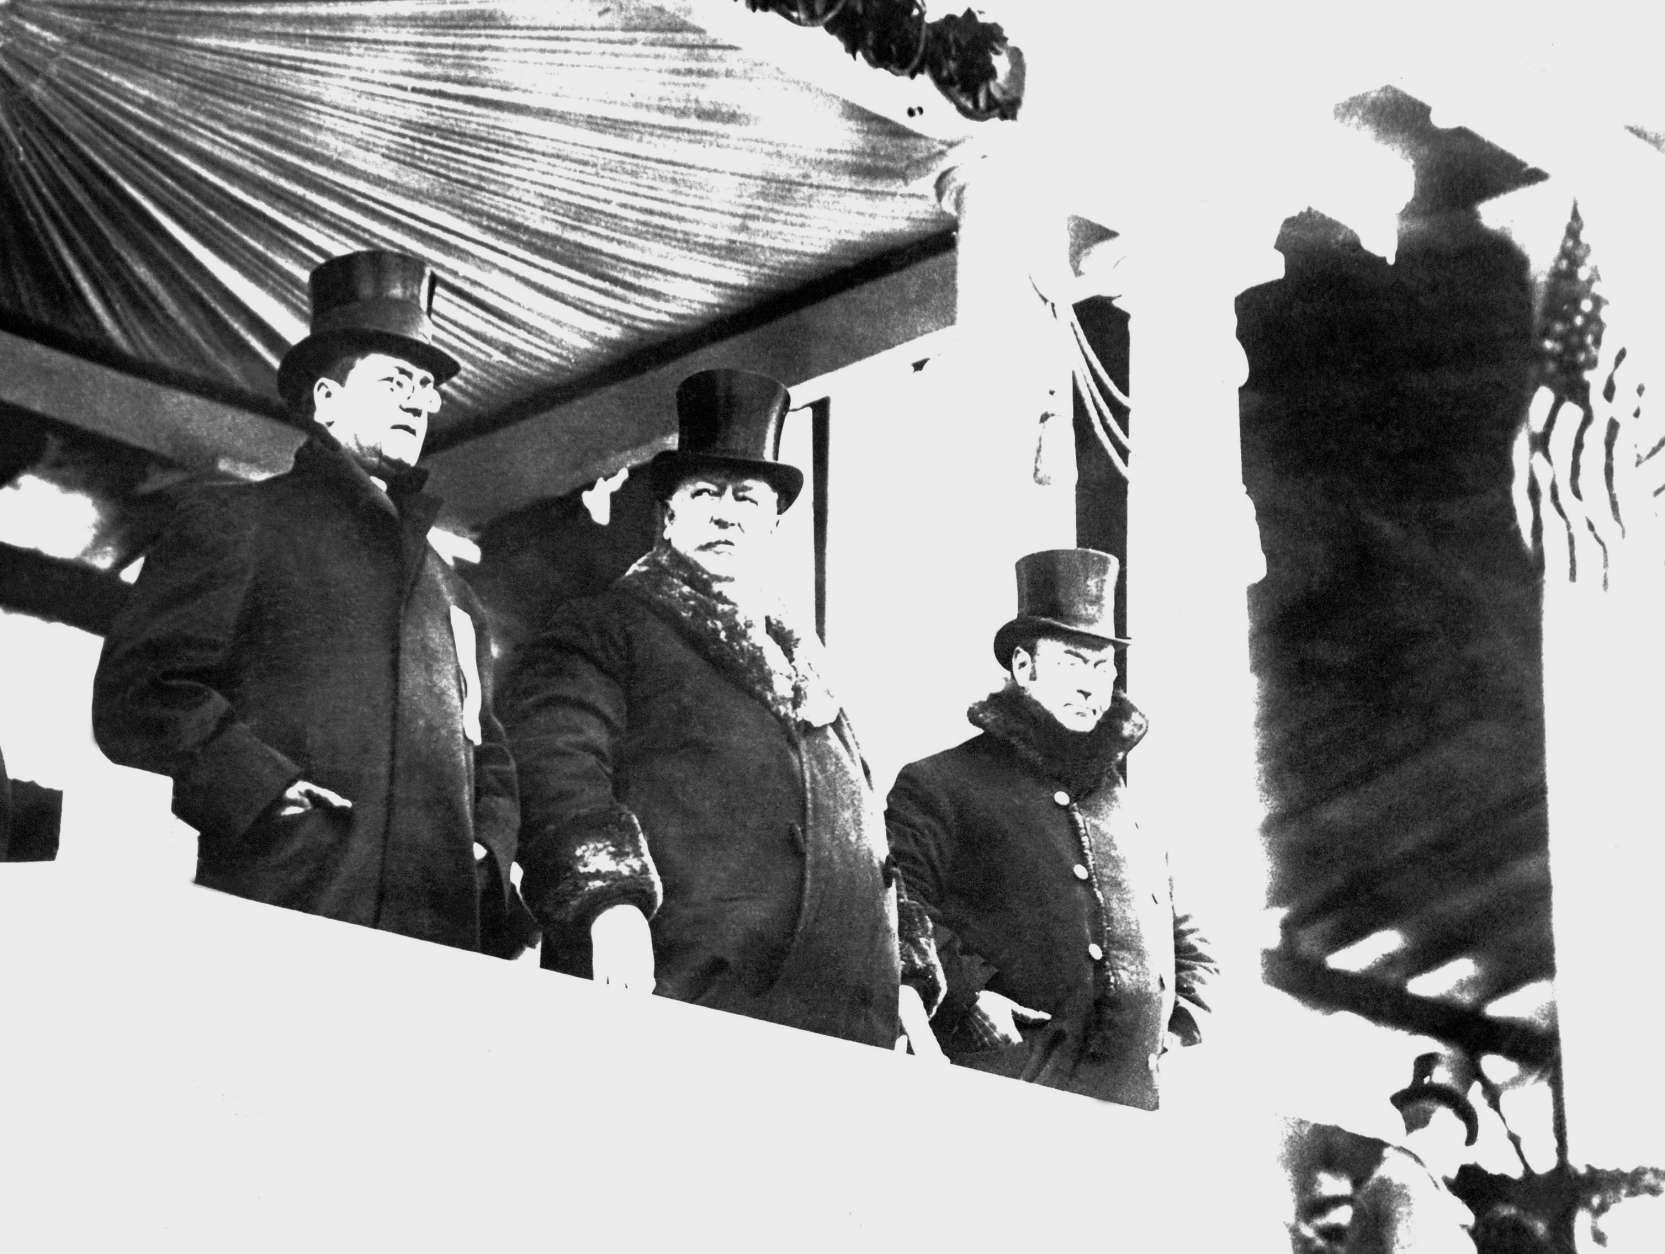 William Howard Taft, center, wore a big fur-lined overcoat when he reviewed parade after his inauguration as president, on March 4, 1909 in Washington.  At right is James S. Sherman, vice president of the United States, and at left Edward Hallwagon, chief of the Inaugural Committee.    A whirling blizzard, featured by flashes of lighting, as well as rain, snow and a cutting wind, made it one of the roughest of all inauguration days. (AP Photo)